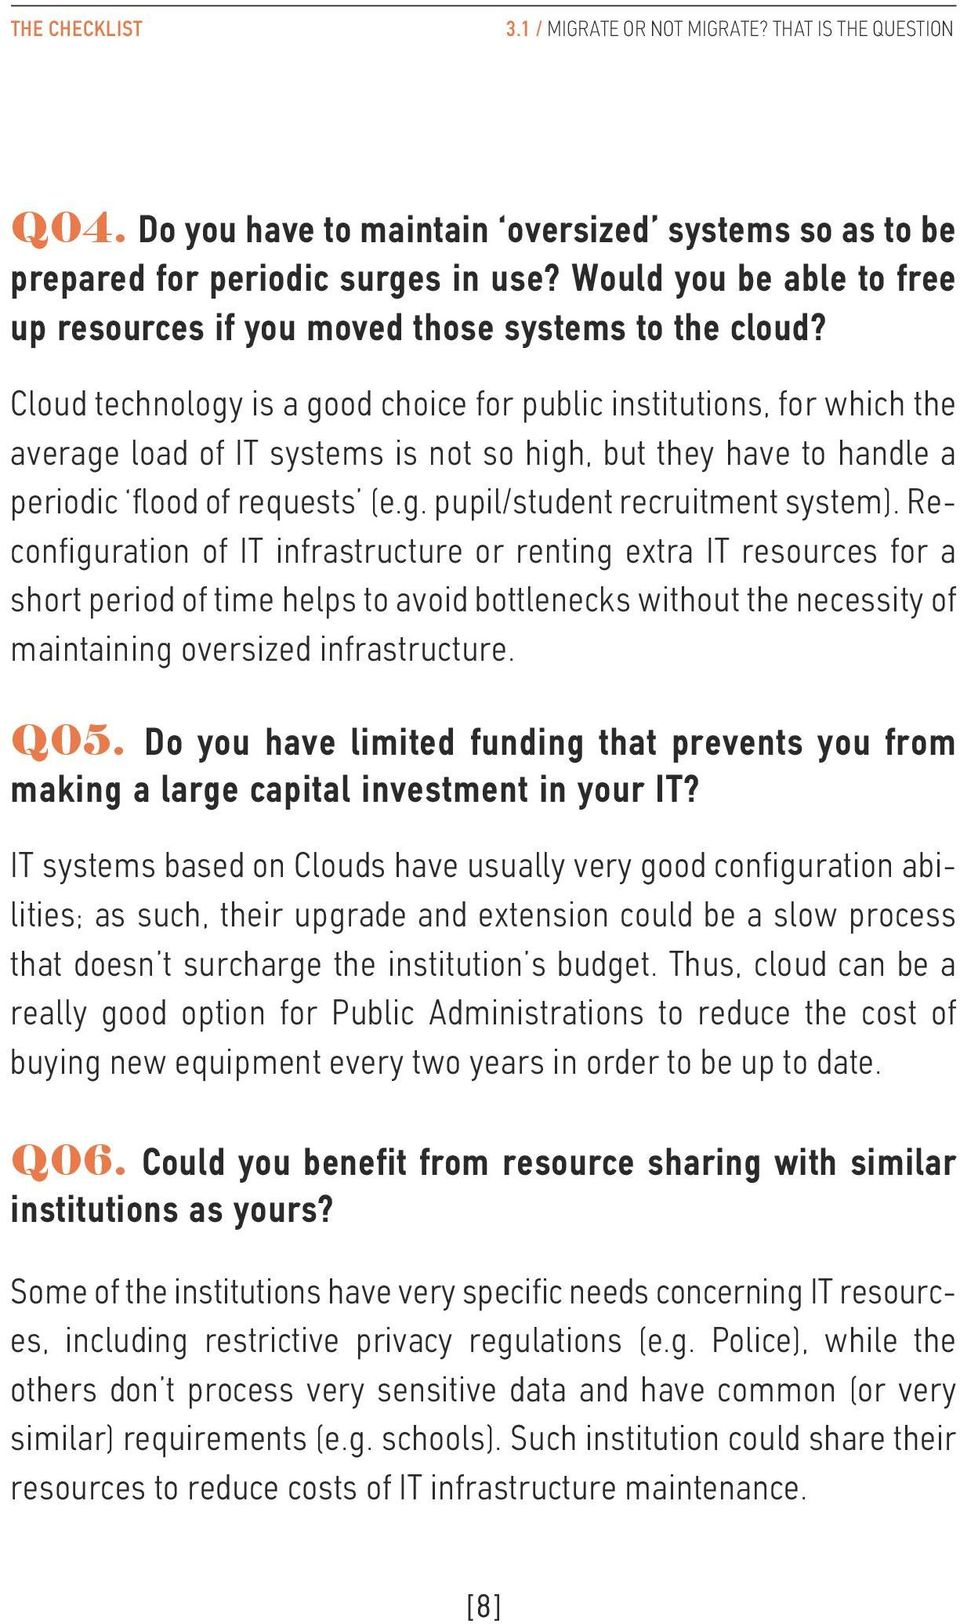 Cloud technology is a good choice for public institutions, for which the average load of IT systems is not so high, but they have to handle a periodic flood of requests (e.g. pupil/student recruitment system).